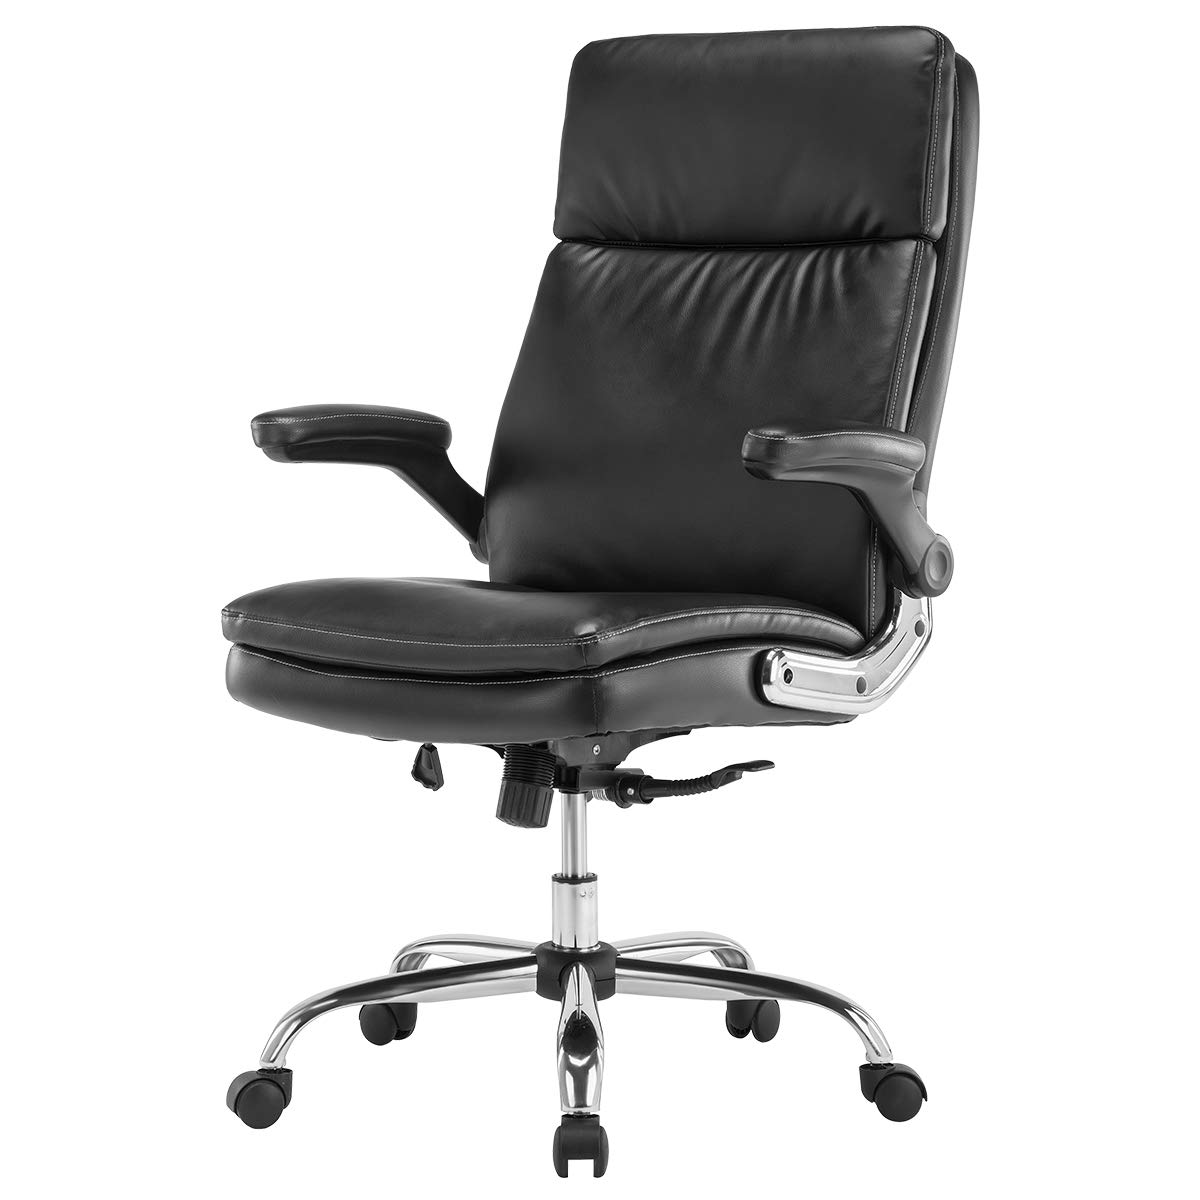 KERMS High Back PU Leather Executive Office Chair, Adjustable Recline Locking Flip-up Arms Computer Desk Chair, Thick Padding and Ergonomic Design for Lumbar Support Black by KERMS